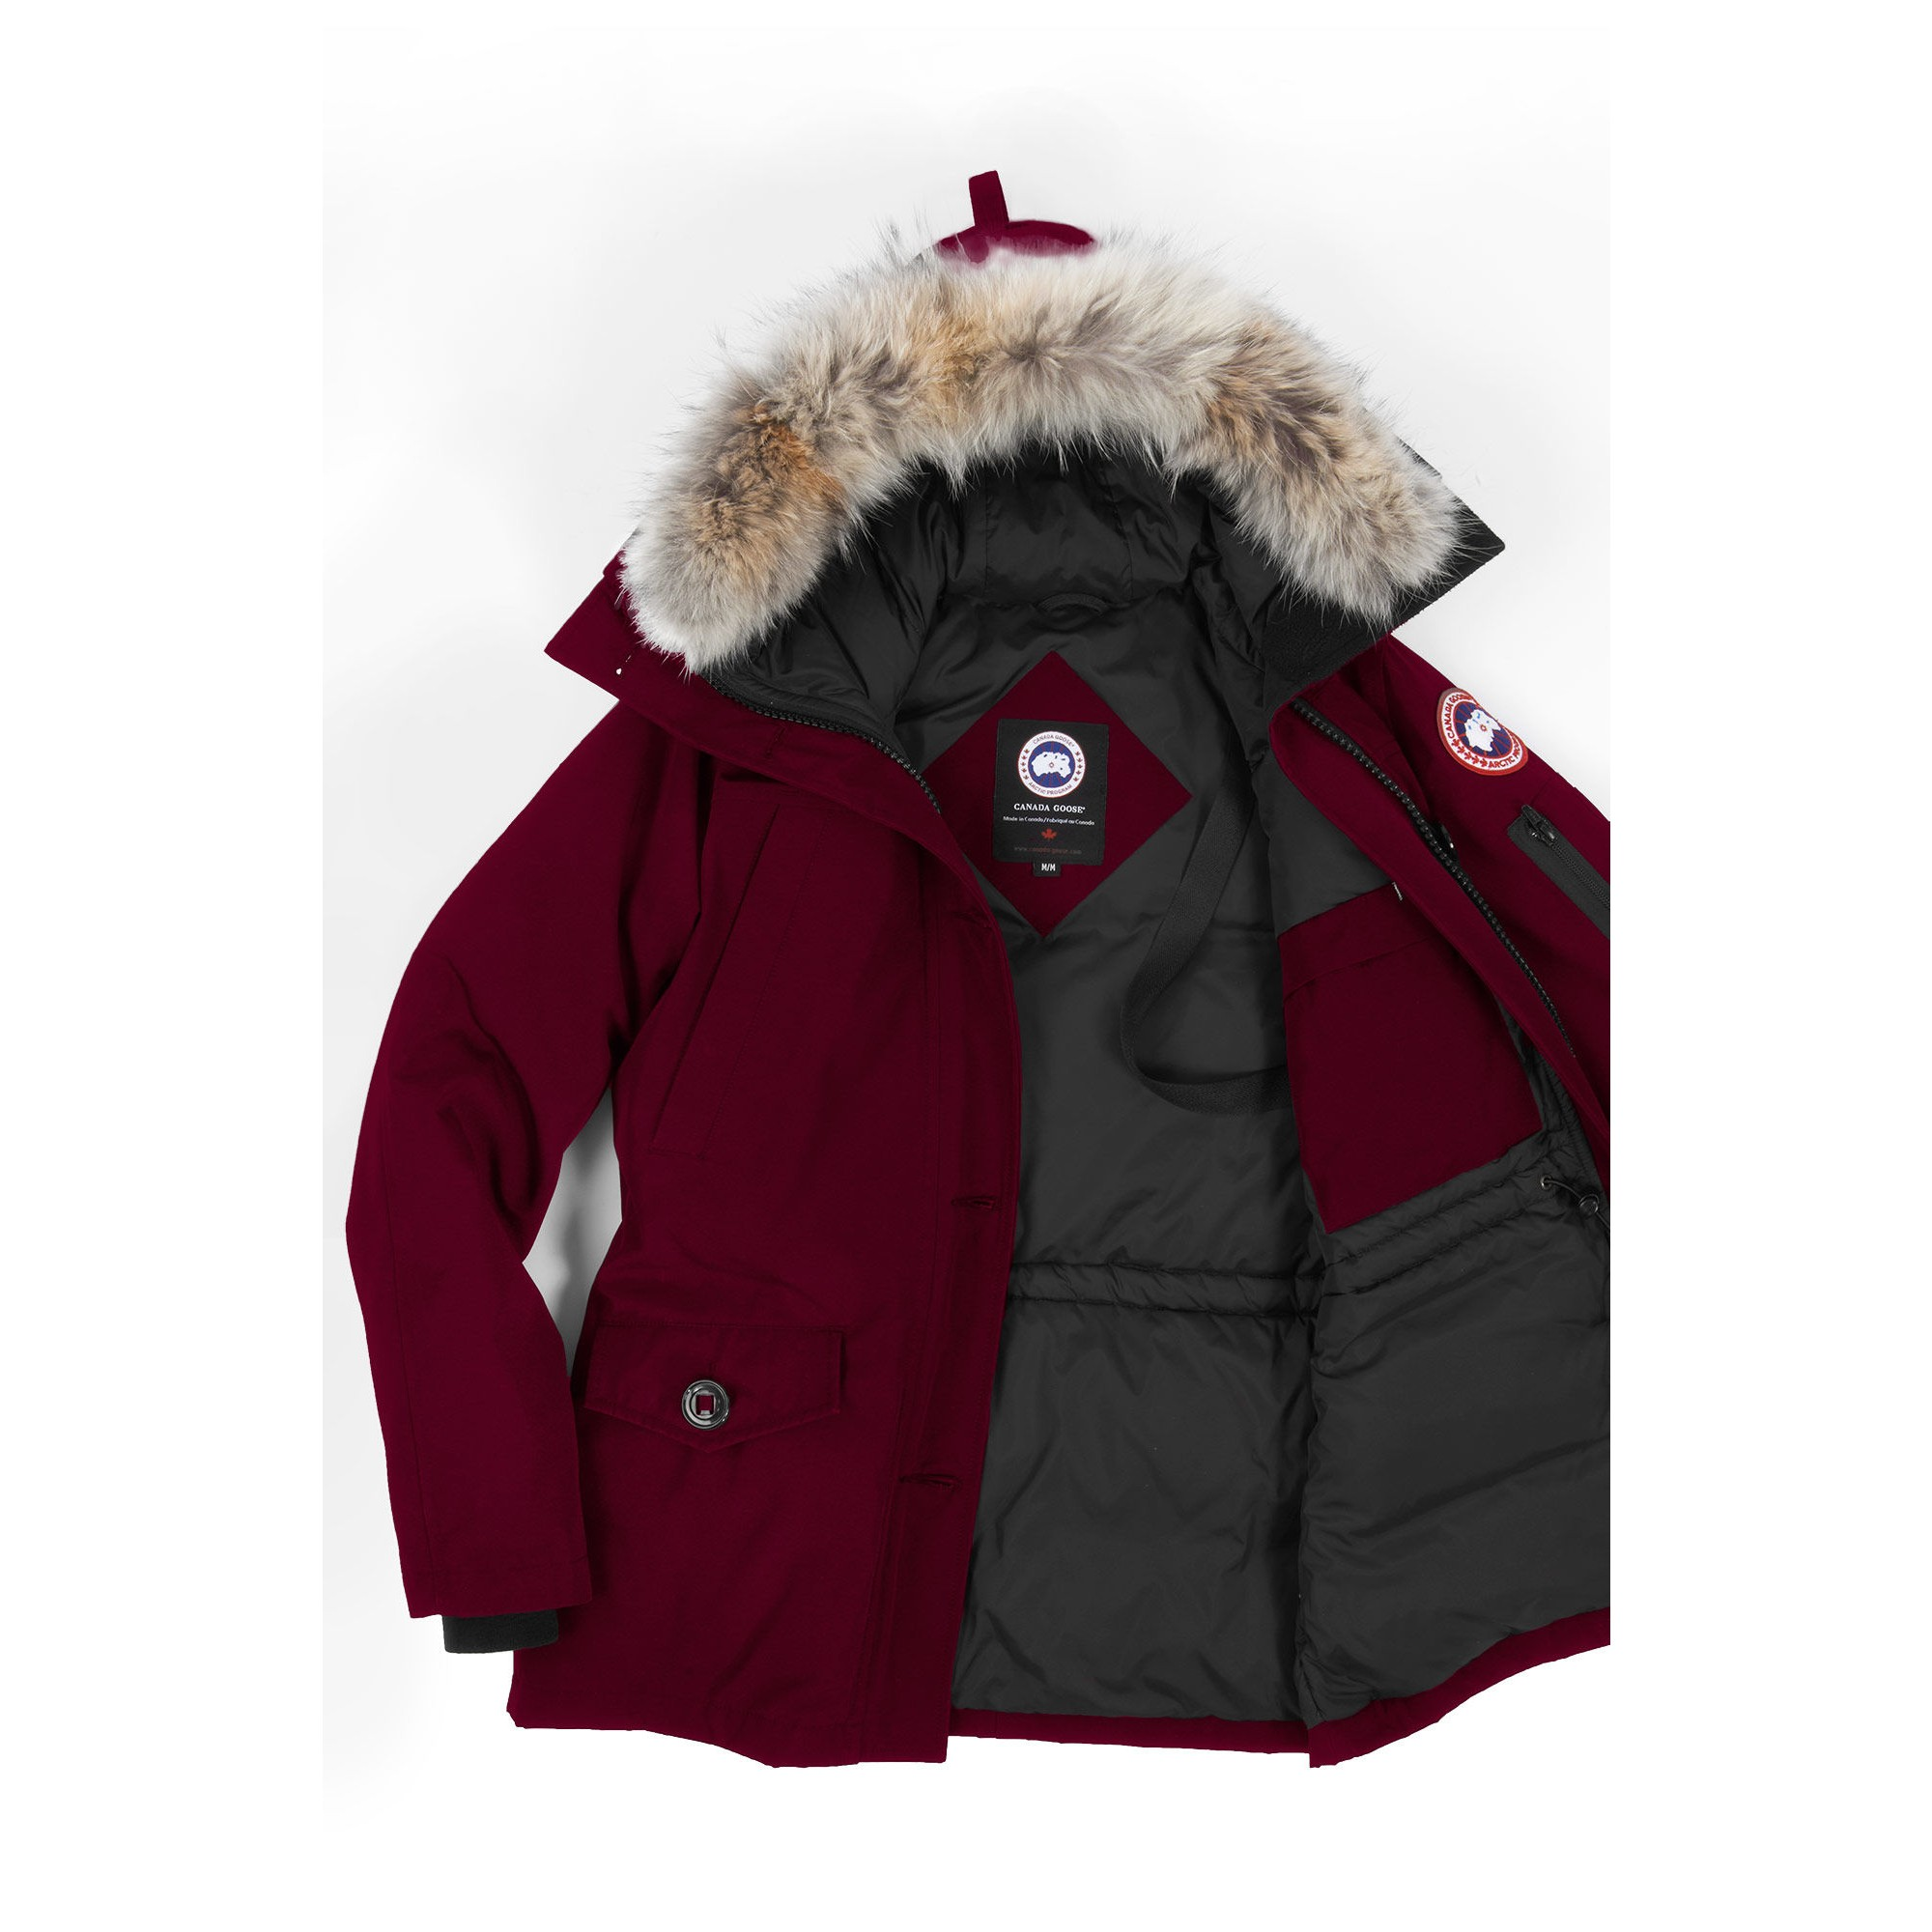 729da8261b07 cheapest canada goose montebello parka women bordeaux 2530l. display  gallery item 1 display gallery item